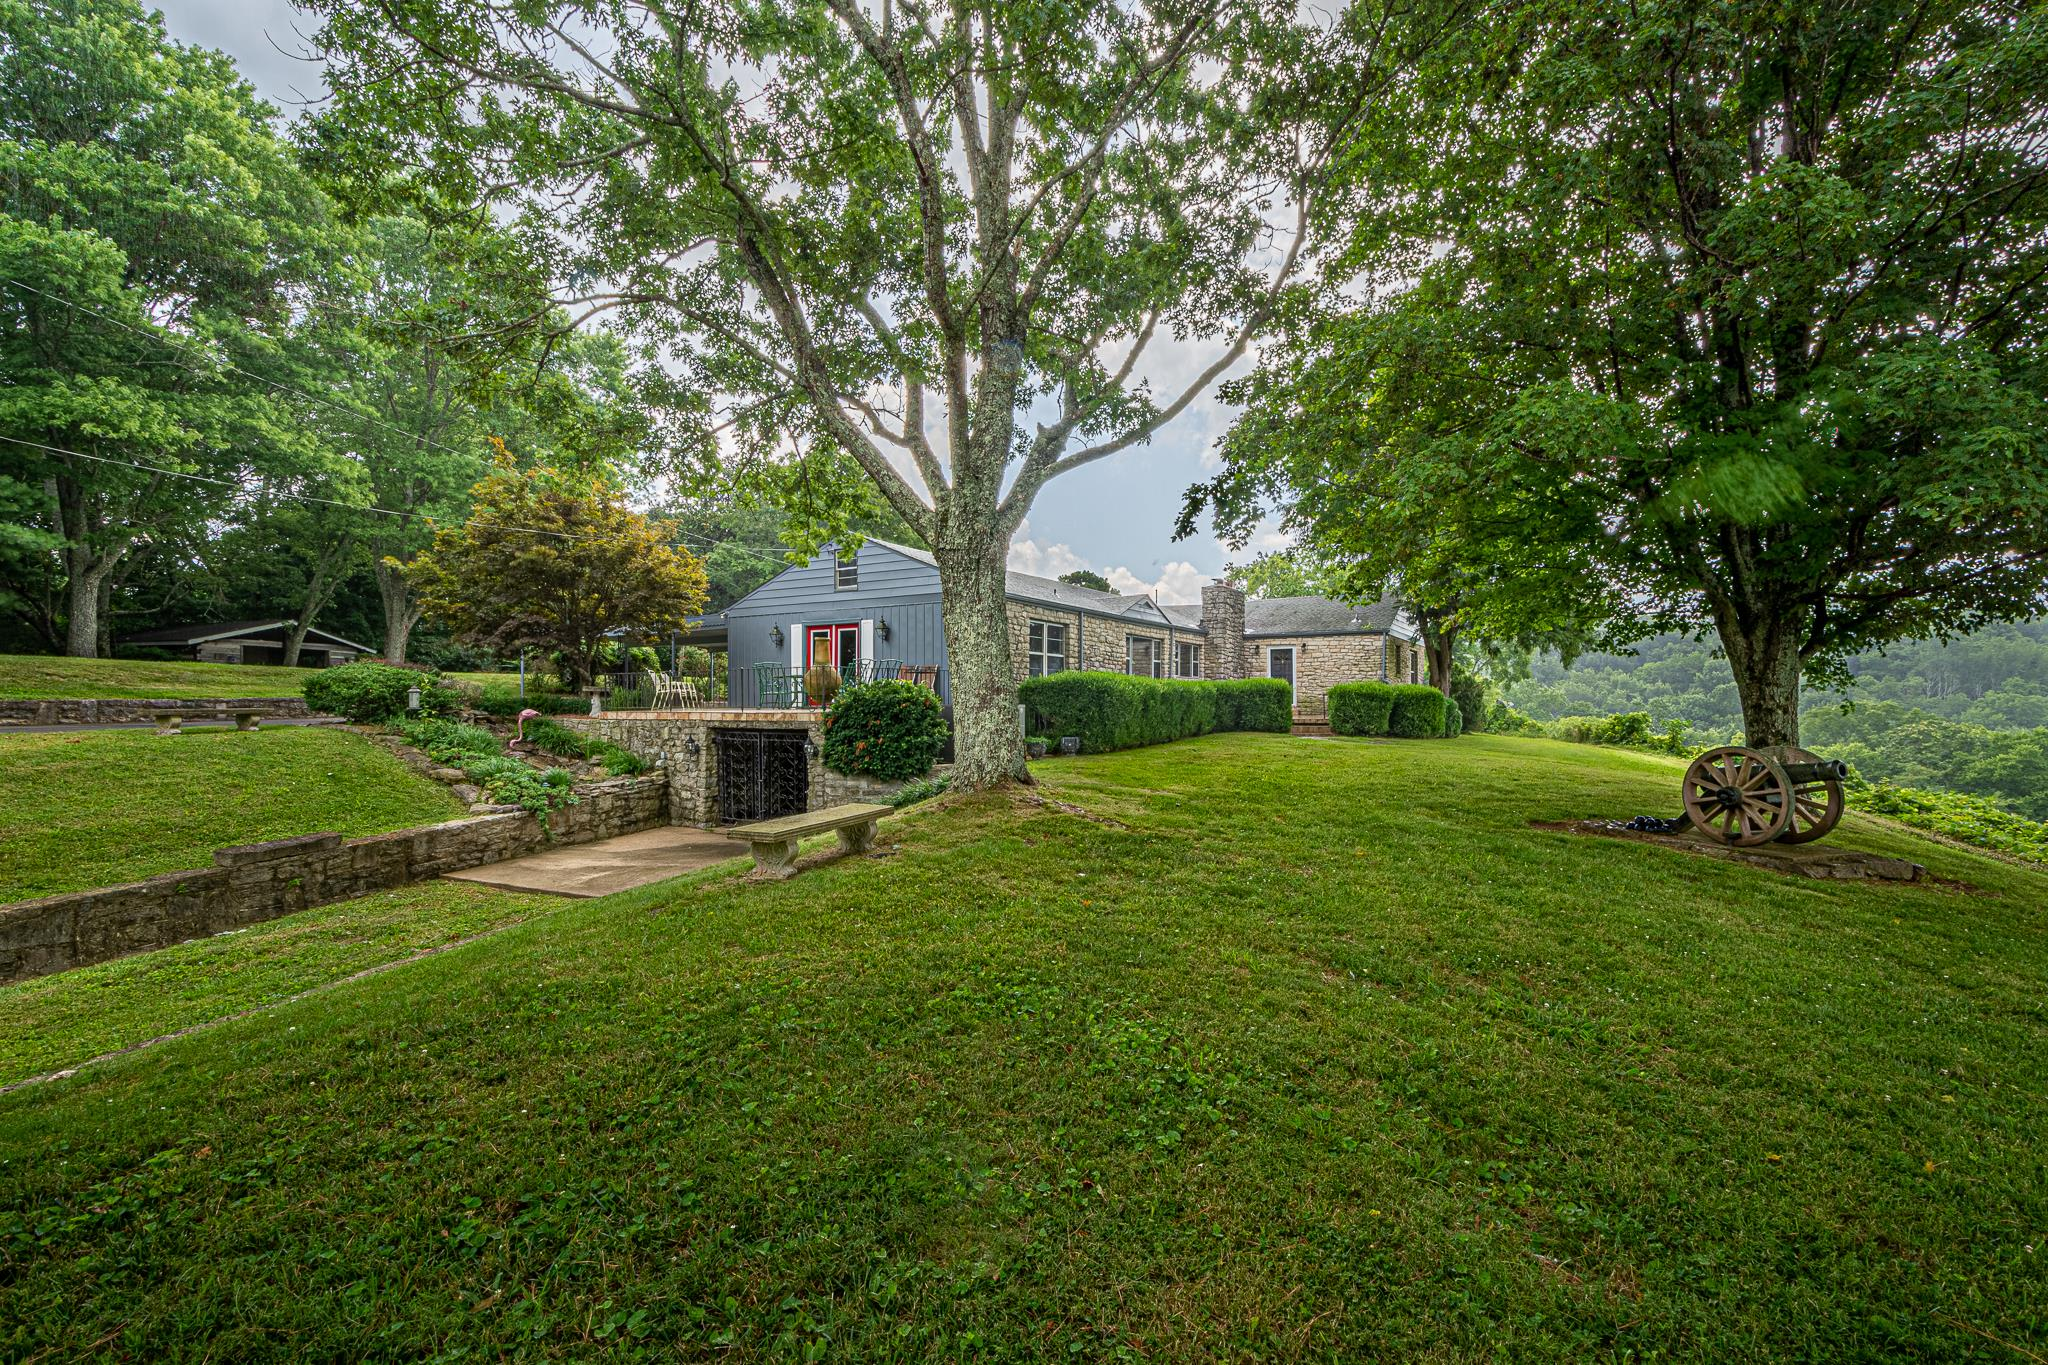 1310 E College St, Pulaski, TN 38478 - Pulaski, TN real estate listing